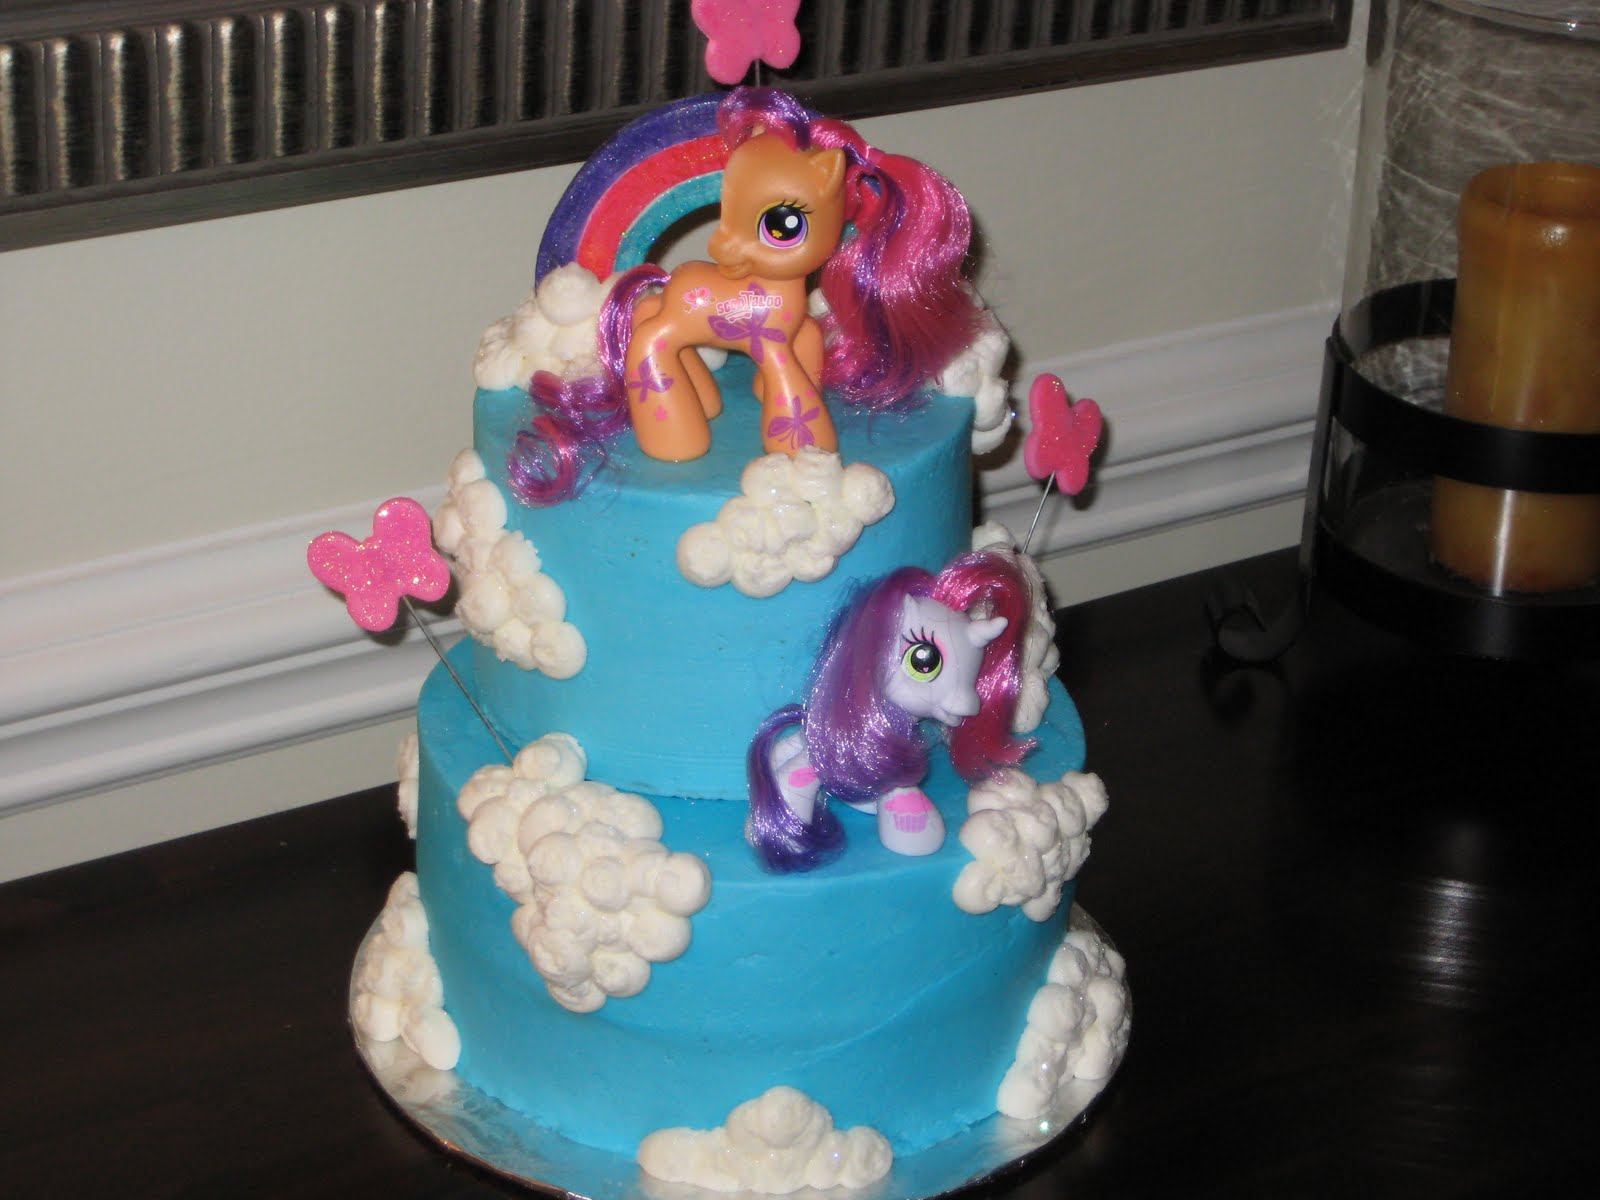 fOr THe lOvE oF CakE~: My Little Pony Birthday Cake